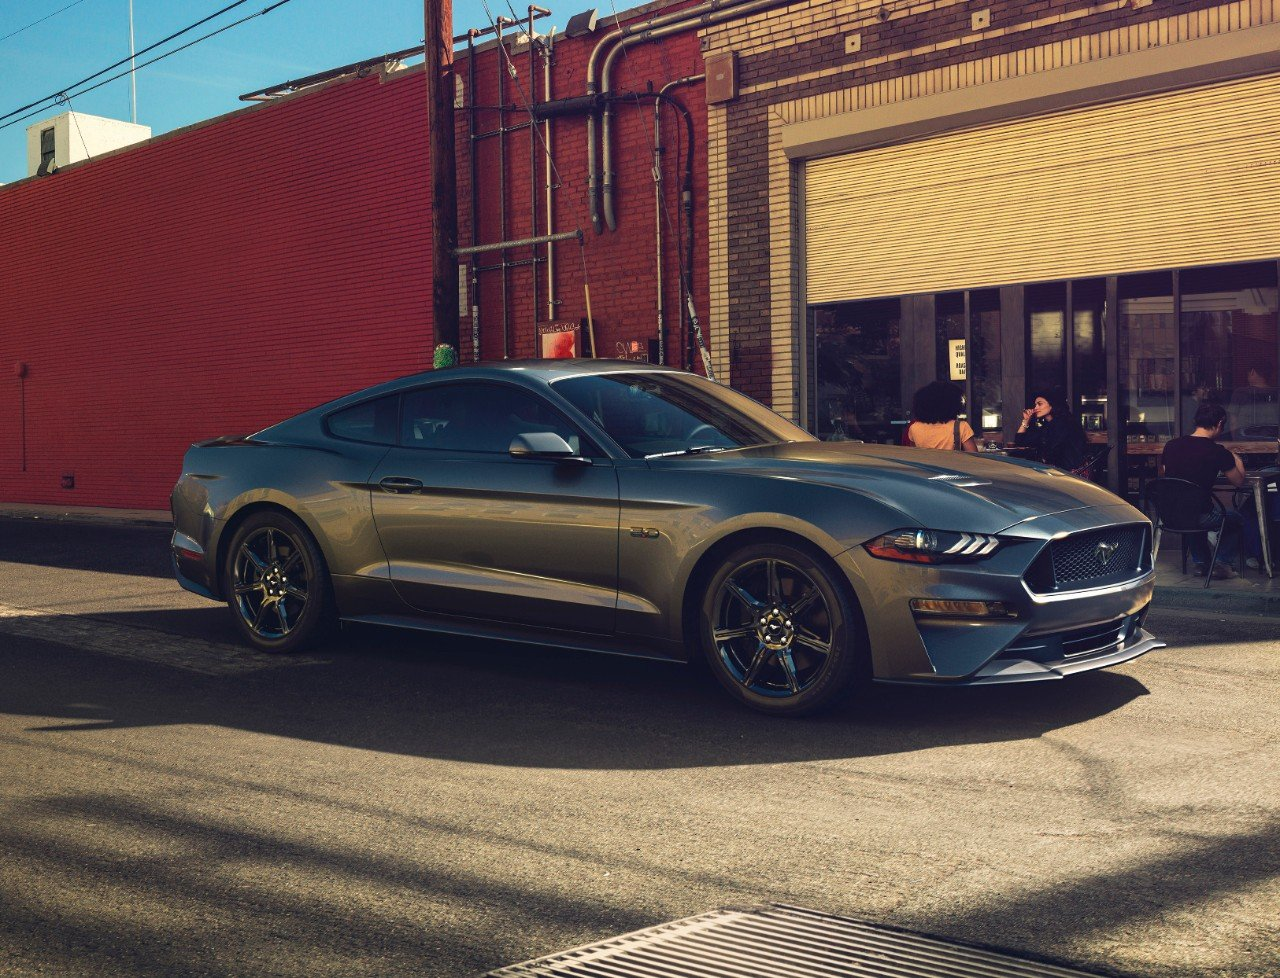 The 2018 Ford Mustang Officially Debuts to Much Meh